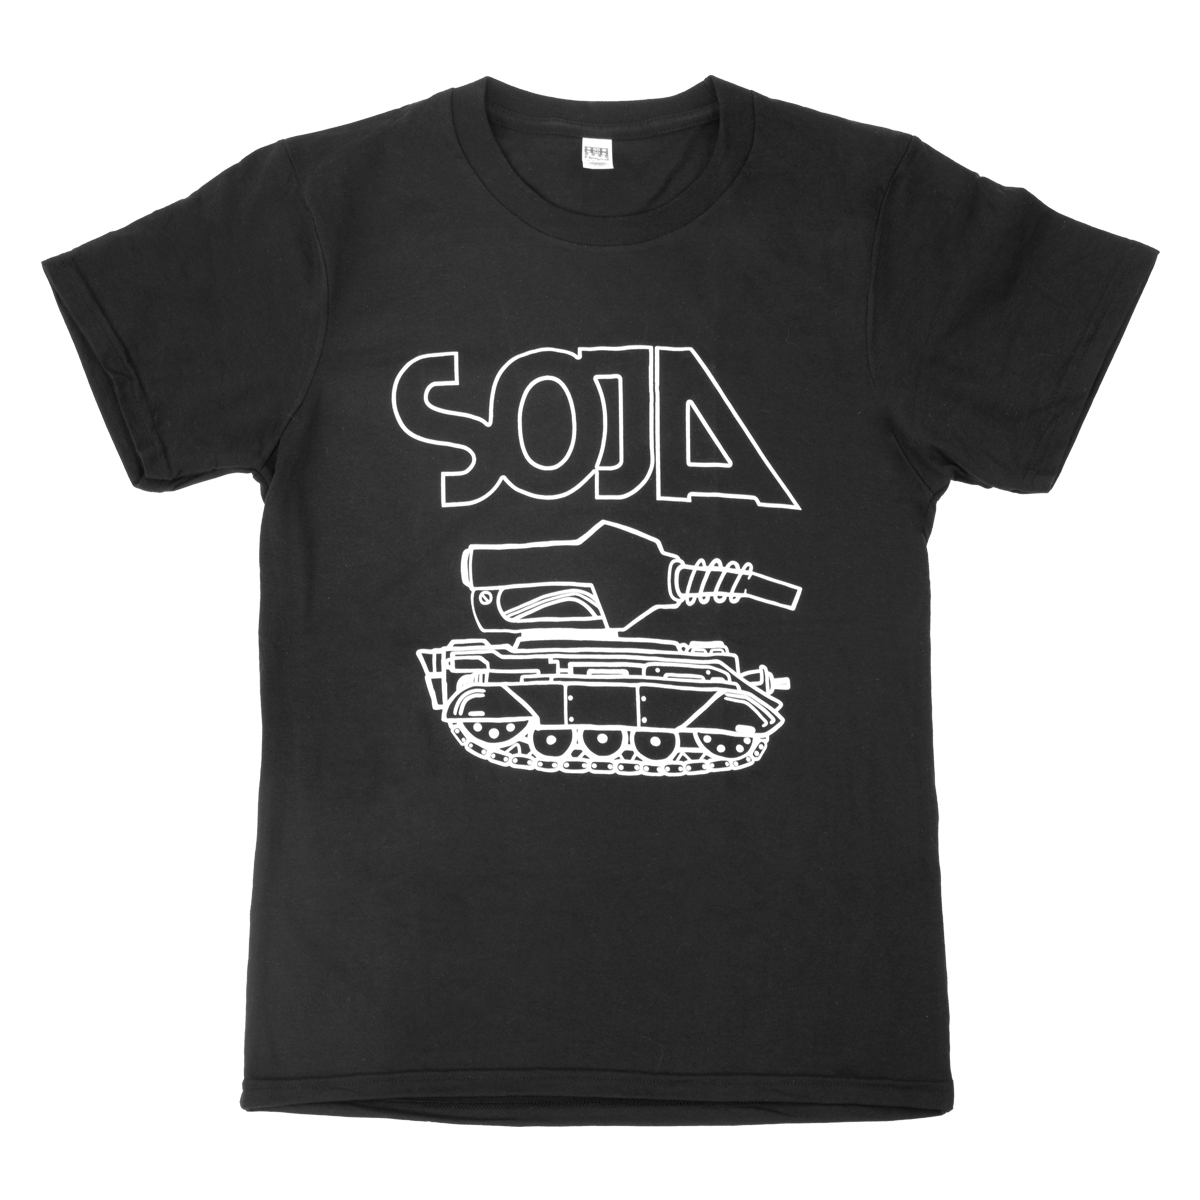 SOJA Tank Design Shirt